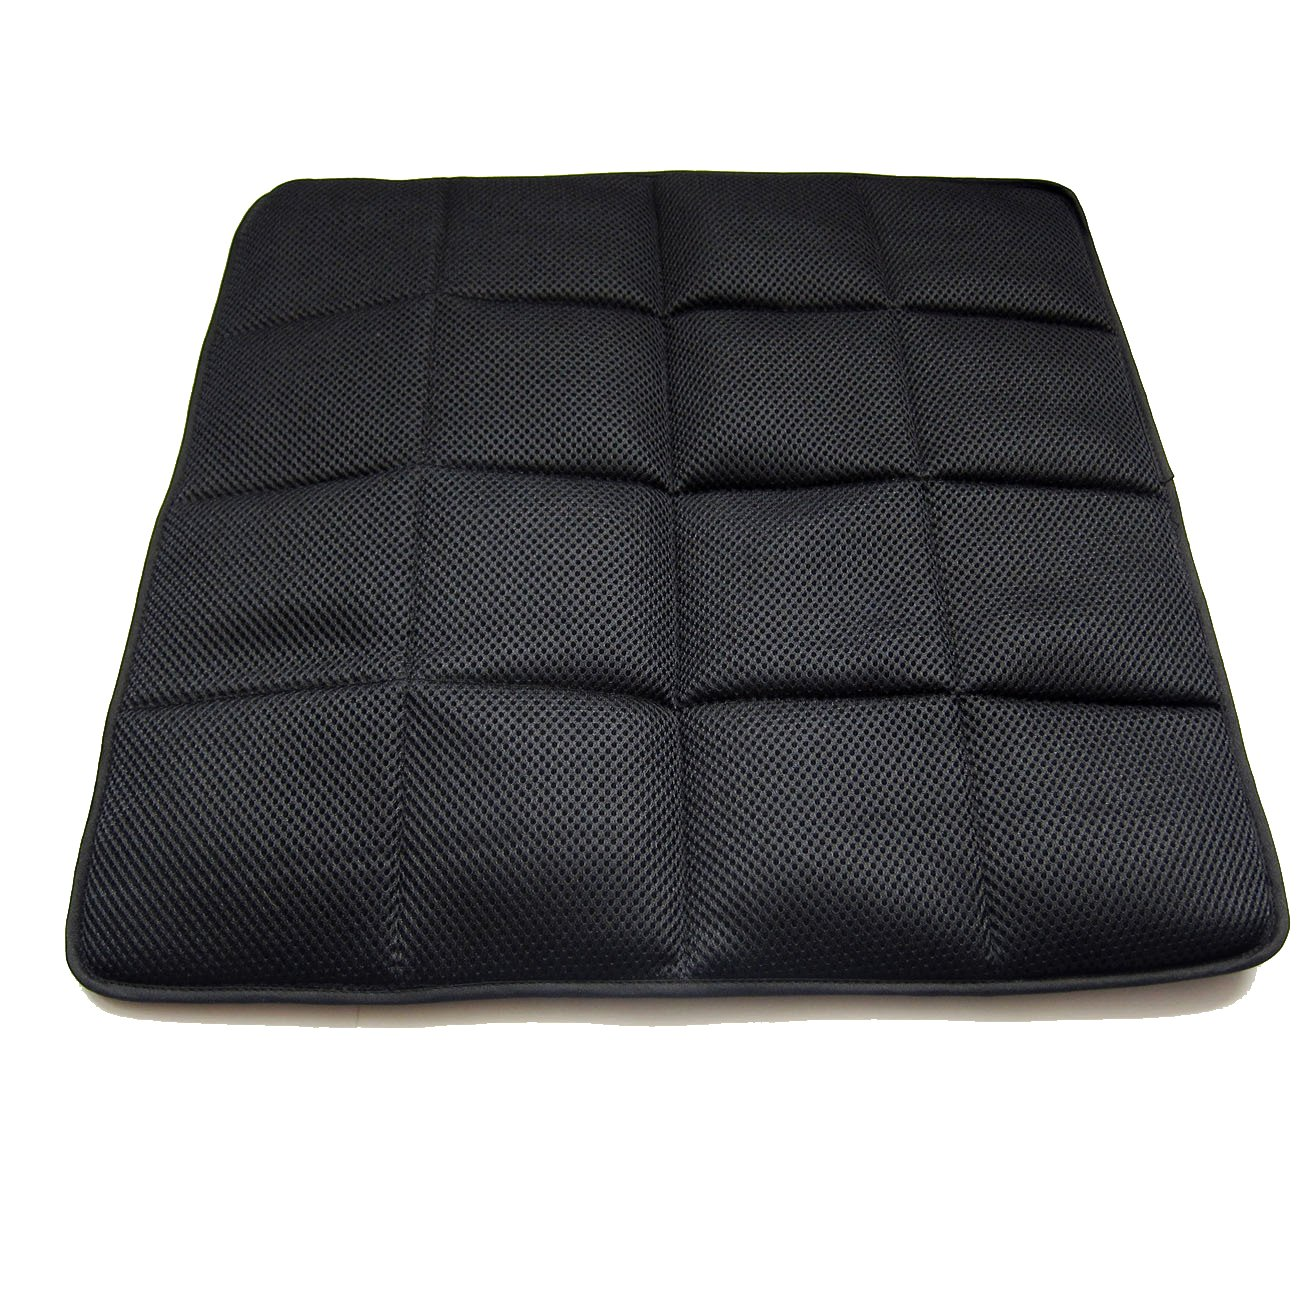 DGQ Natural Bamboo Charcoal Non-Slip Breathable Deodorizer Seat Cushion 17.7'' 17.7''- Home Office Car Chair Cover Pad Mat (Pack of 1,Black)